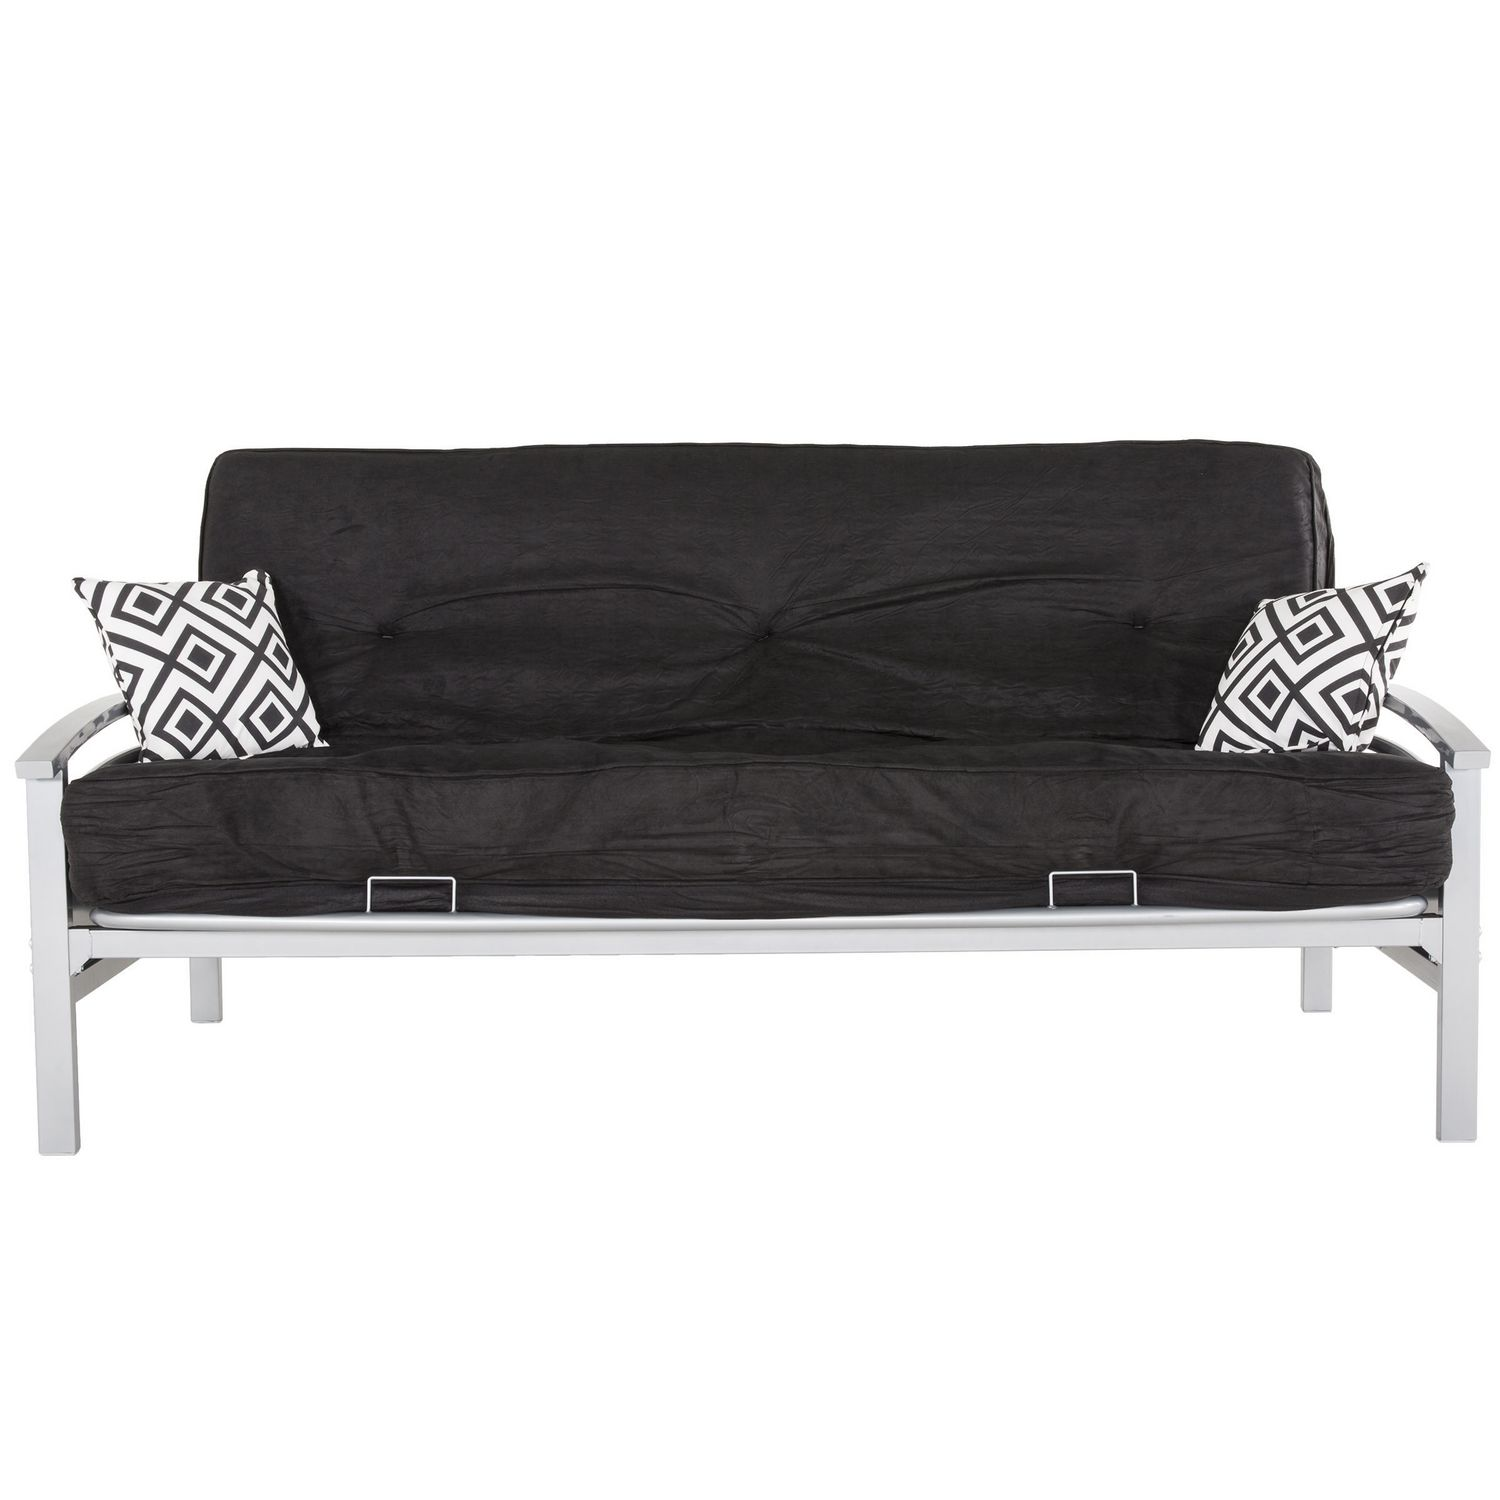 the futon product hardwood unfinished frame savannah mattress center store bifold and